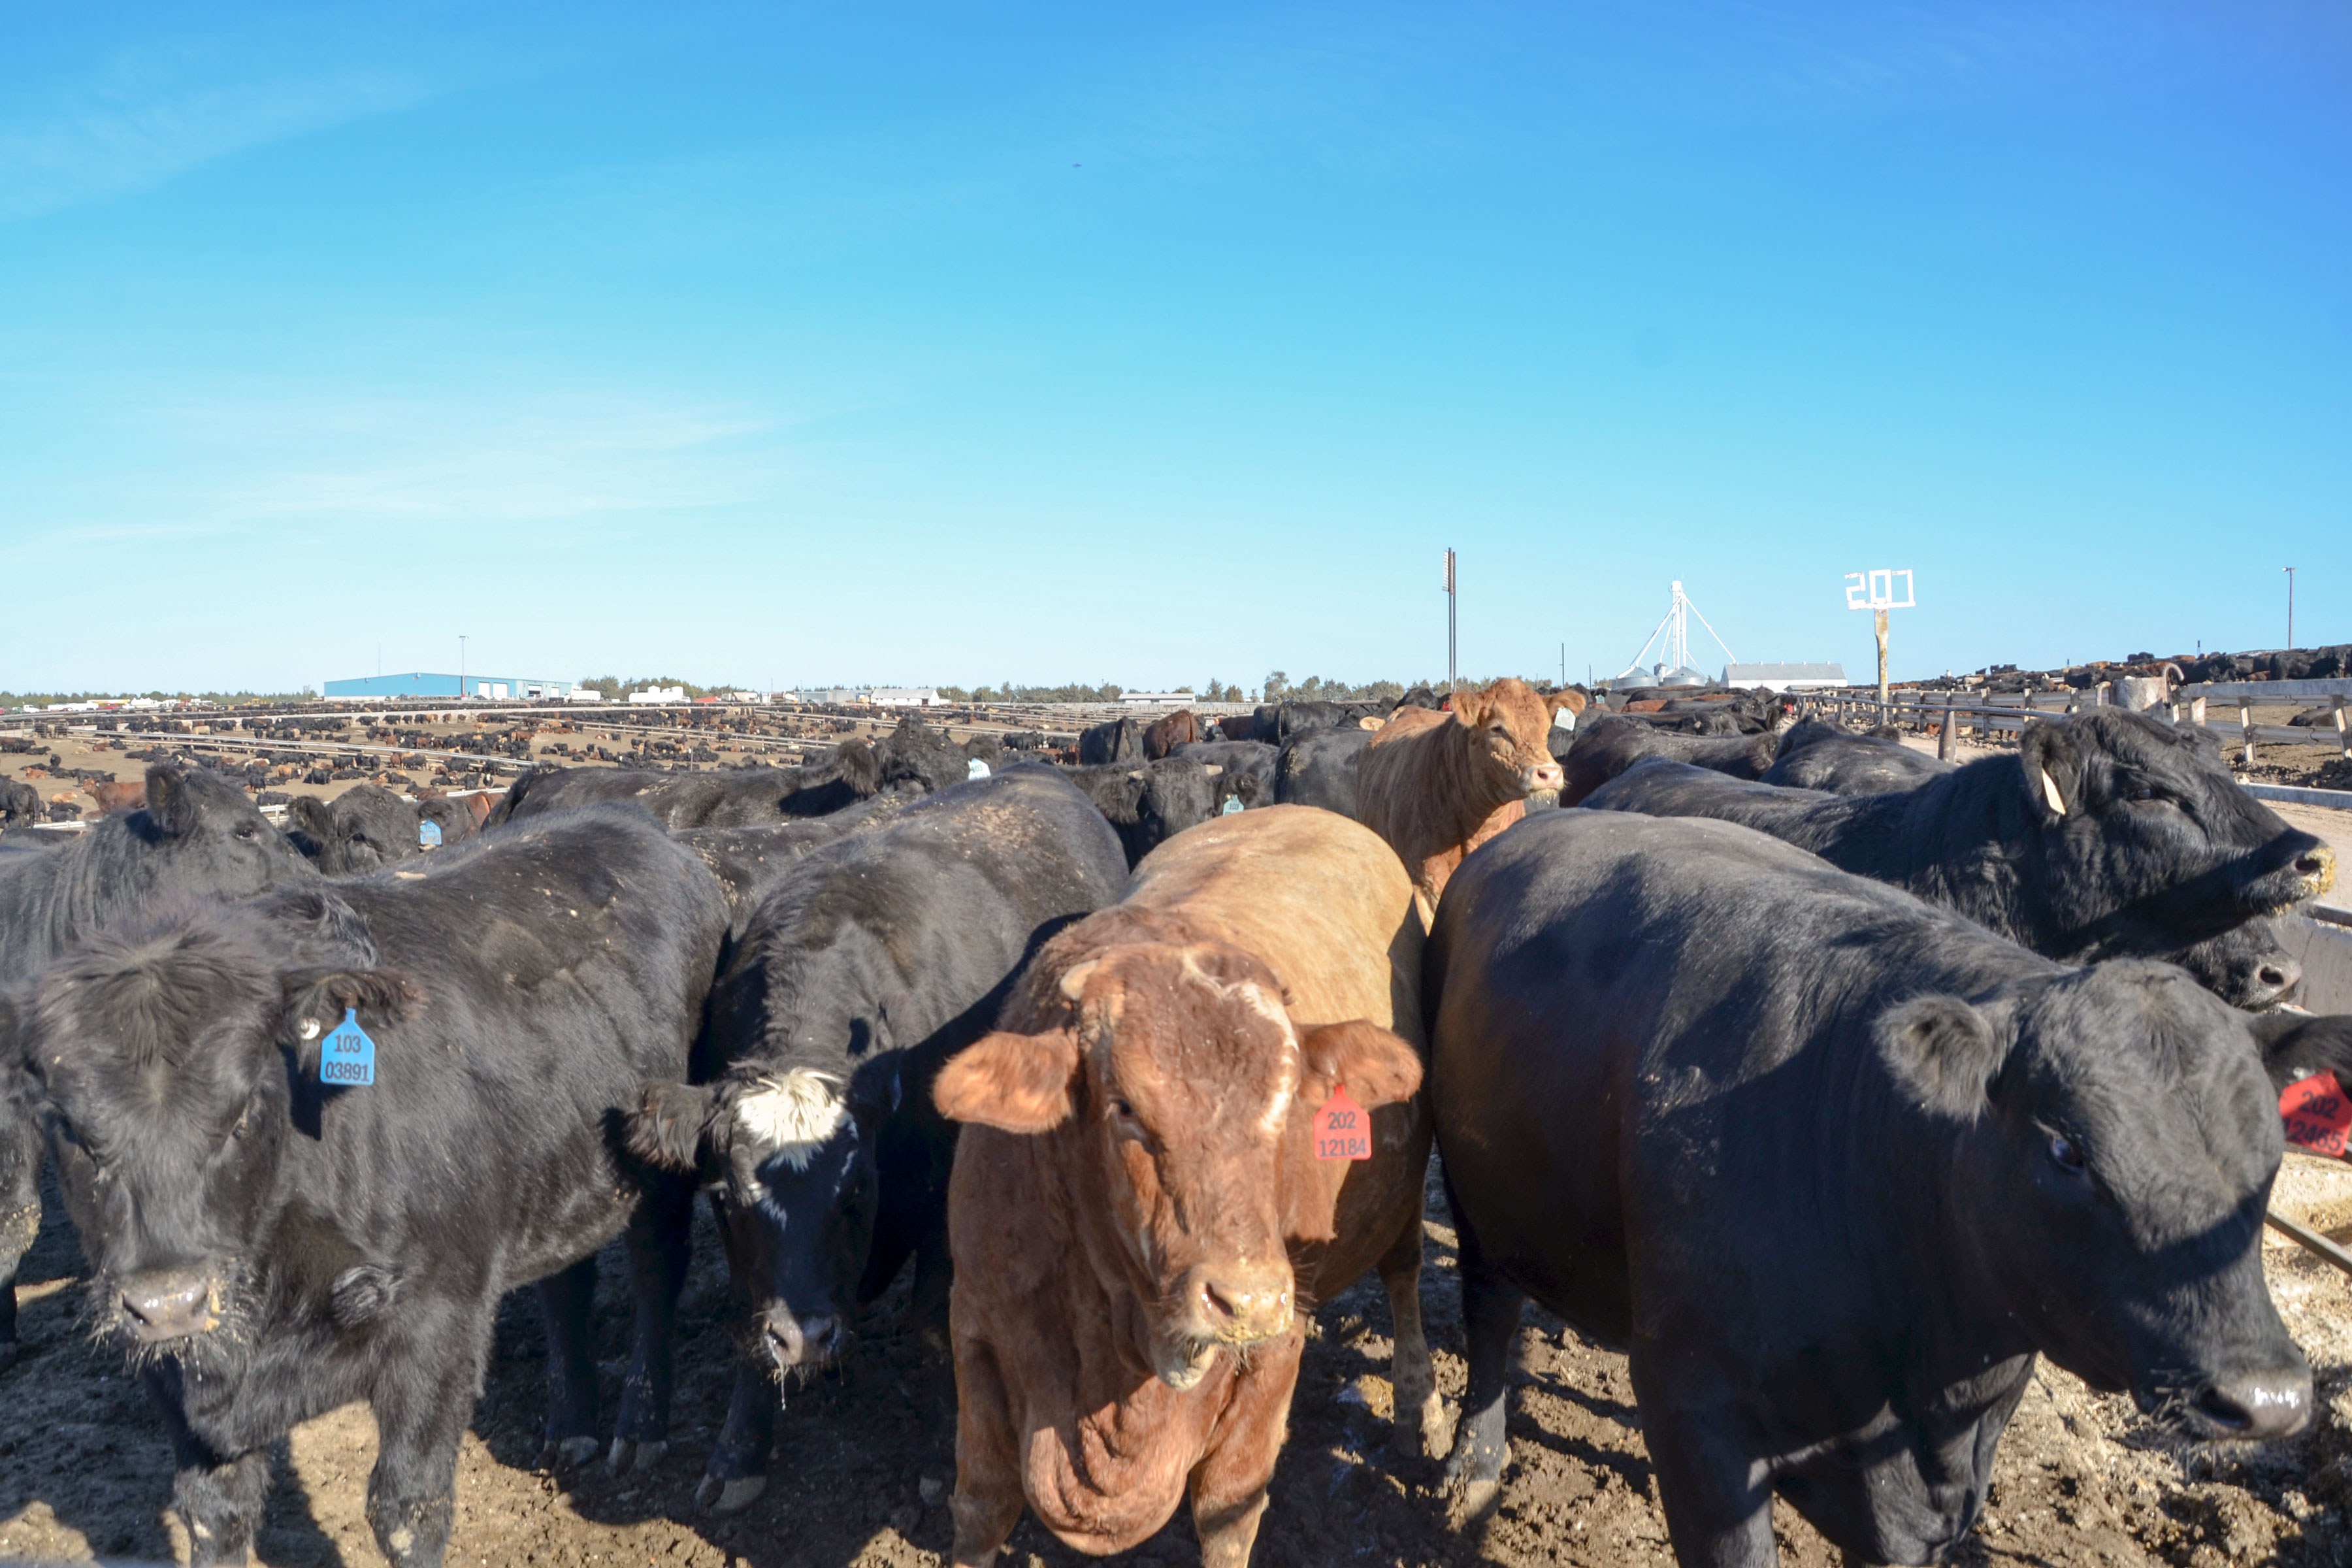 Cattle at 5 Star Feedlot outside of Bethune, Colo. The facility can hold up to 28,000 cattle at a time.